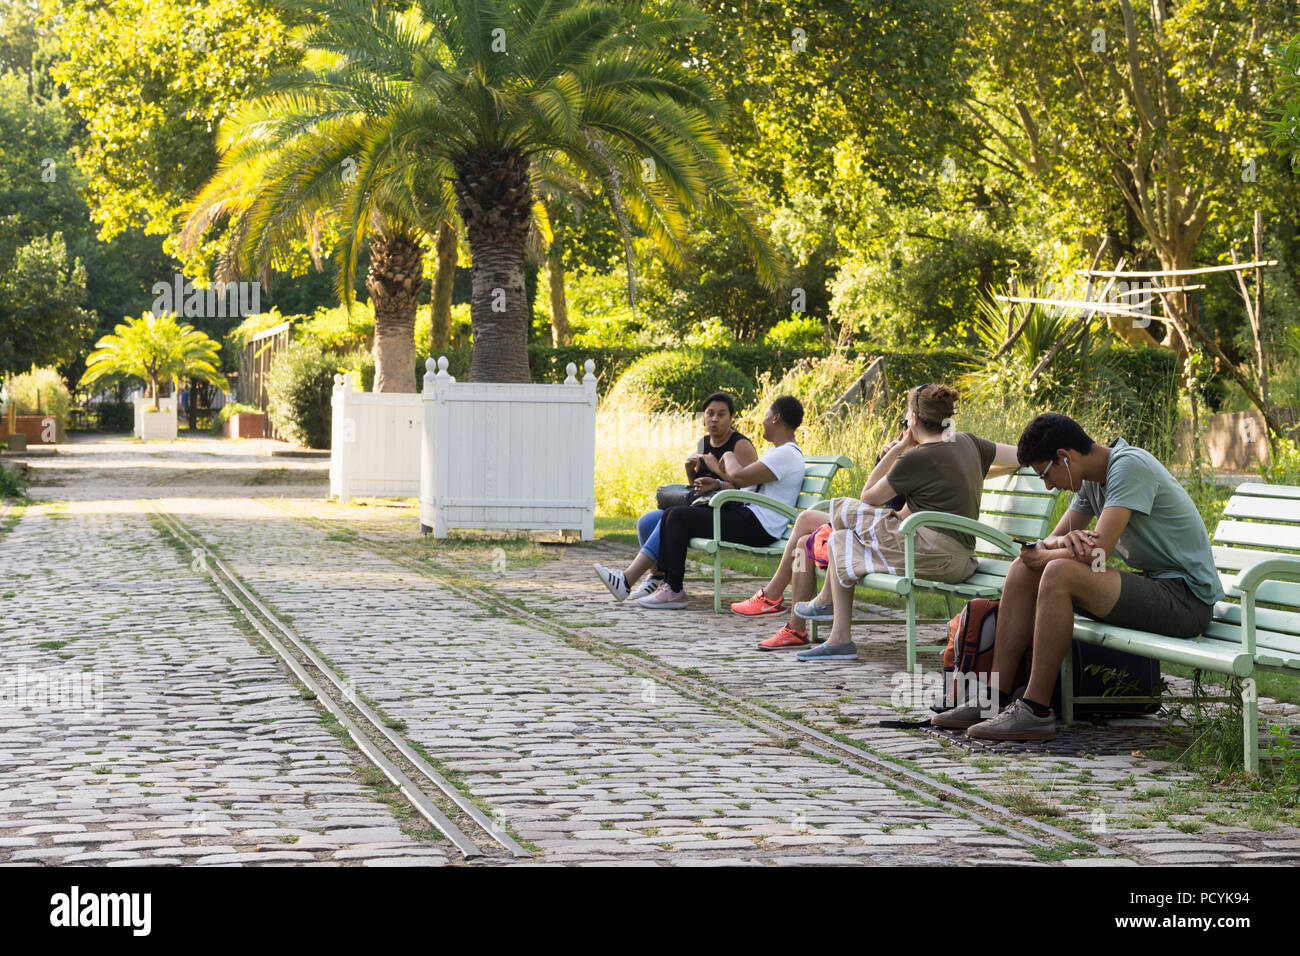 Paris park - People sitting on benches in the Park Bercy in the 13th arrondissement of Paris, France. Stock Photo